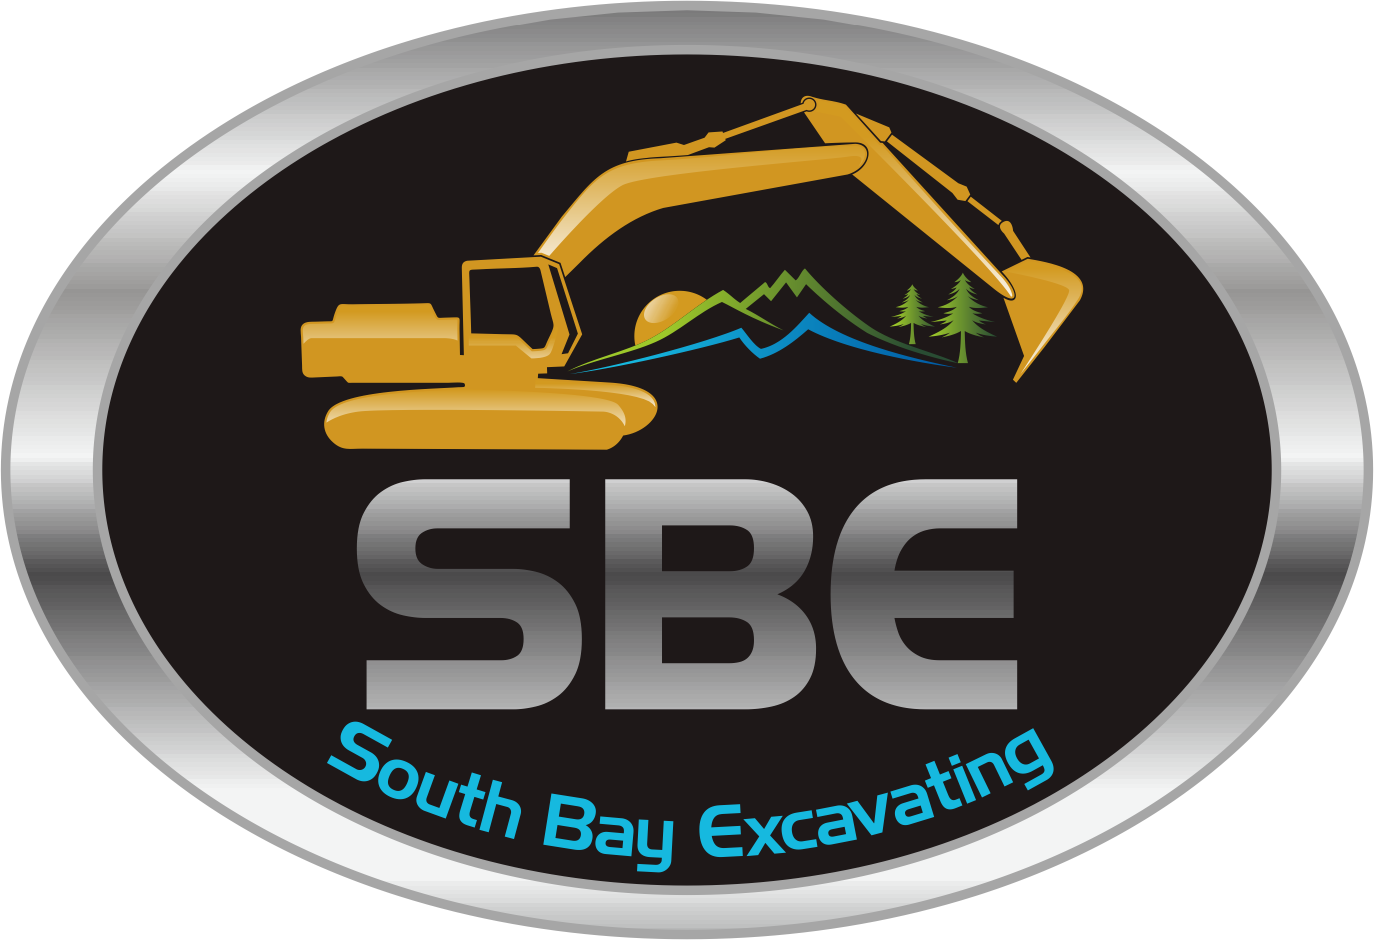 South Bay Excavating